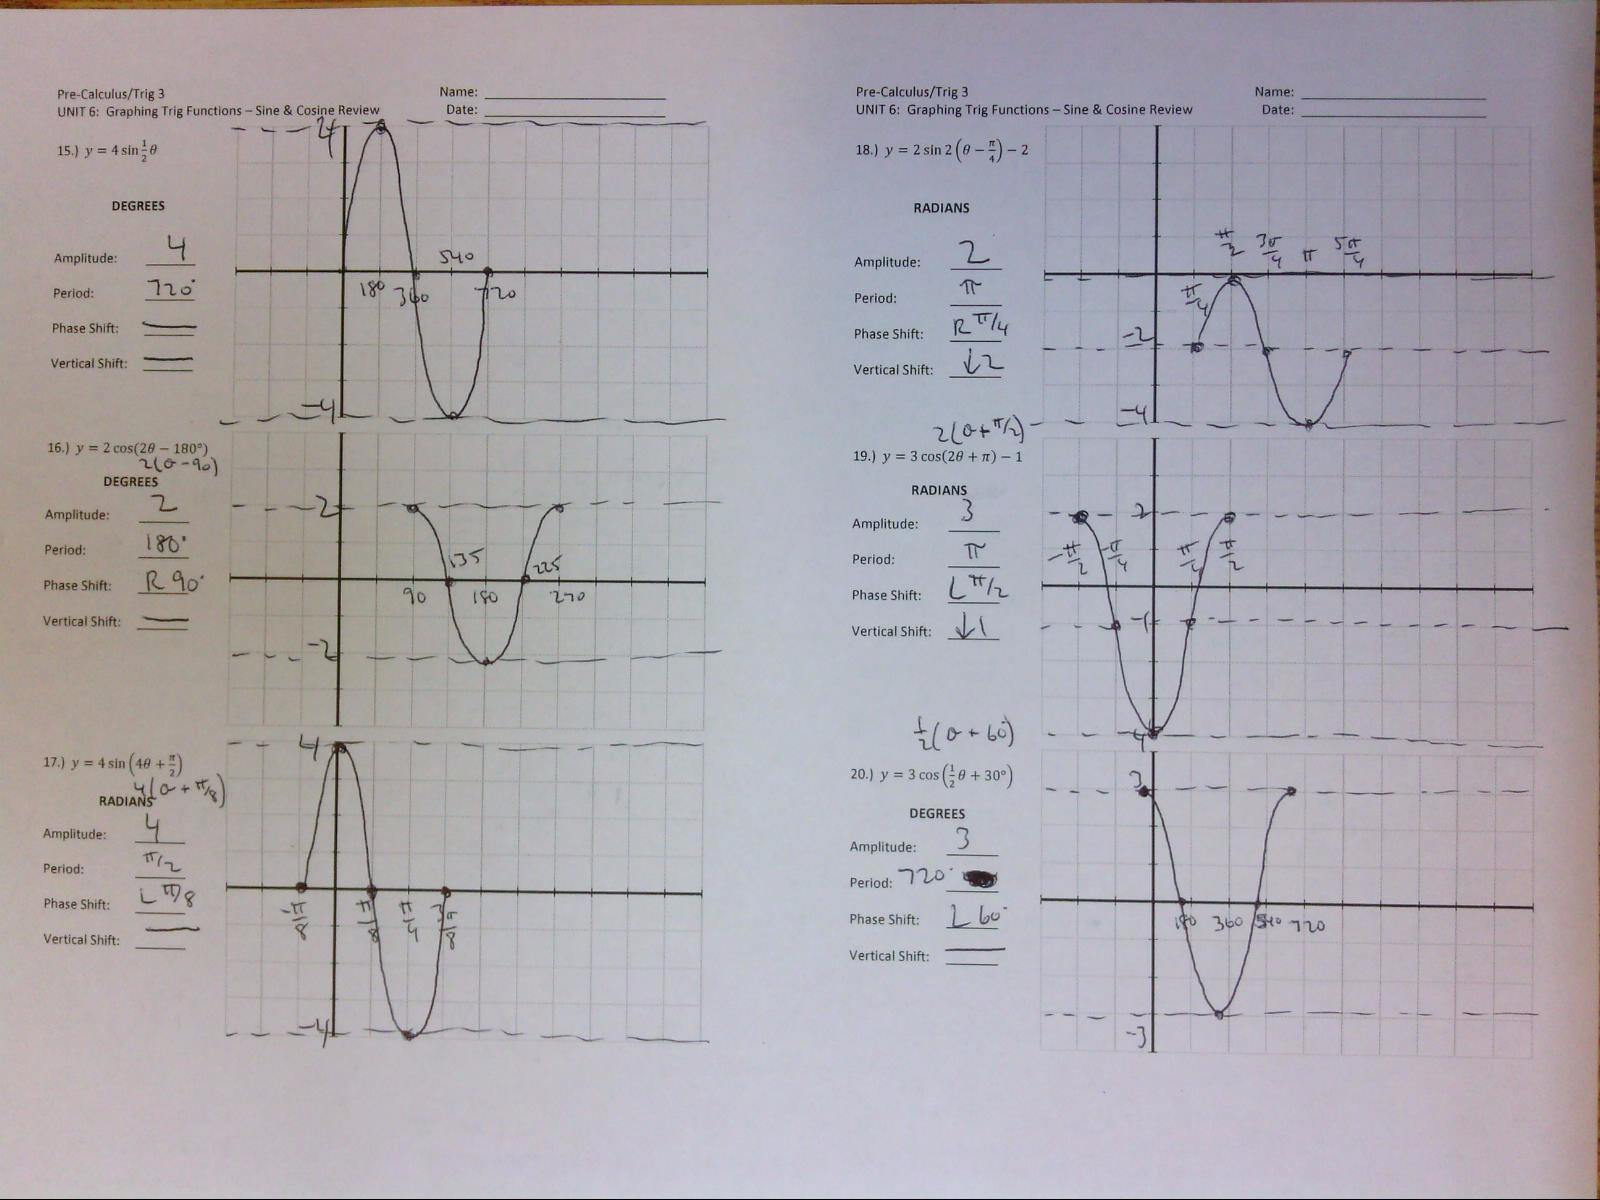 Wetzel, Gregory / Unit 6: Graphing Trig